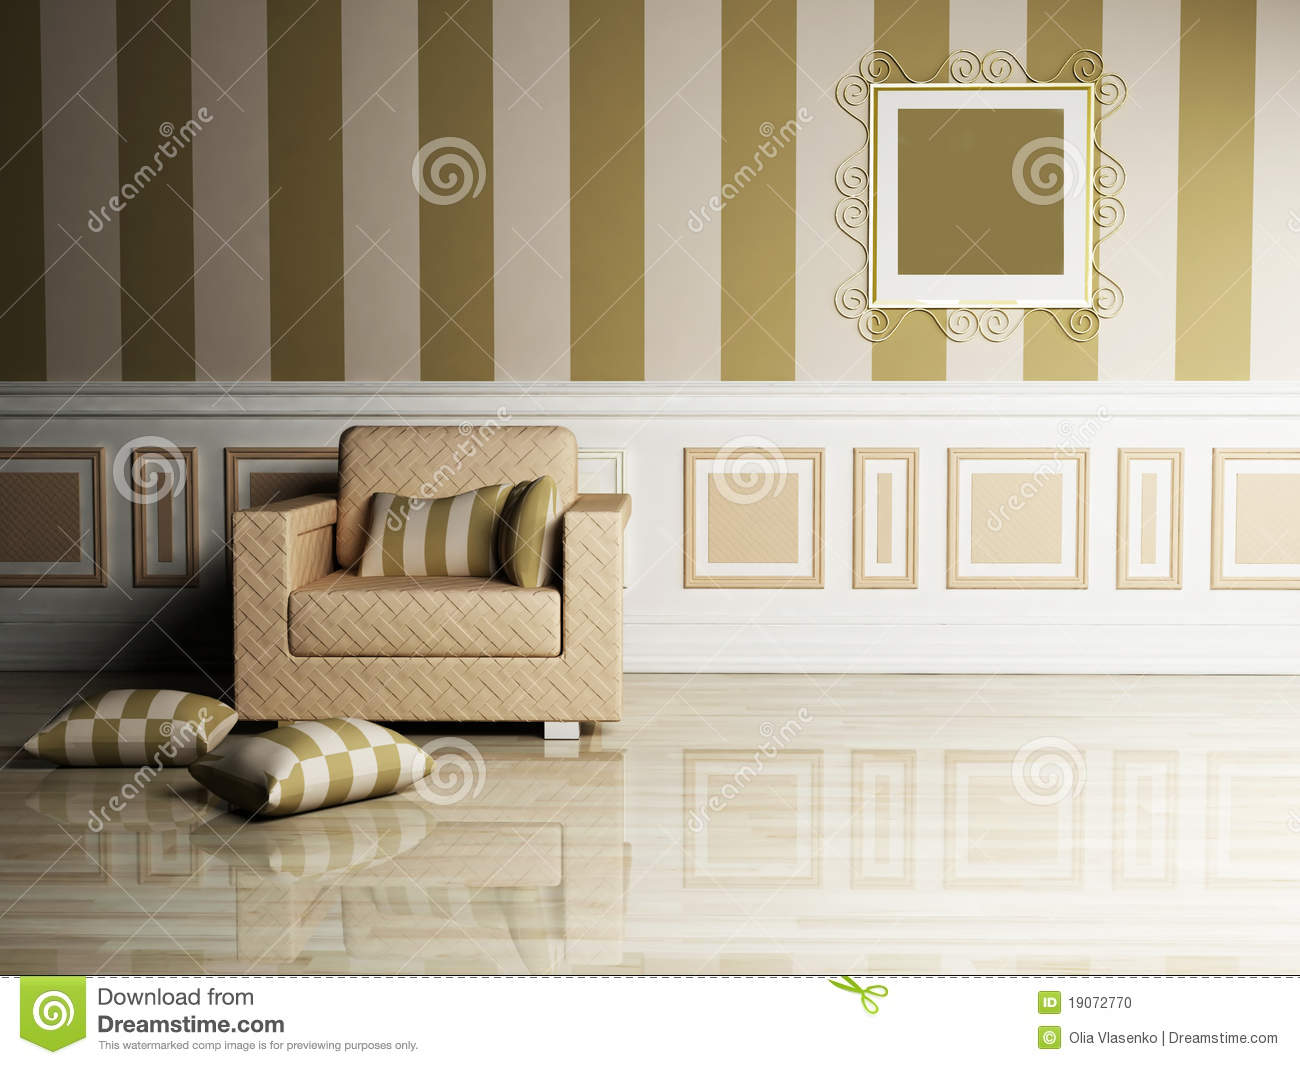 lassic interior design of living oom stock photo image 19072770